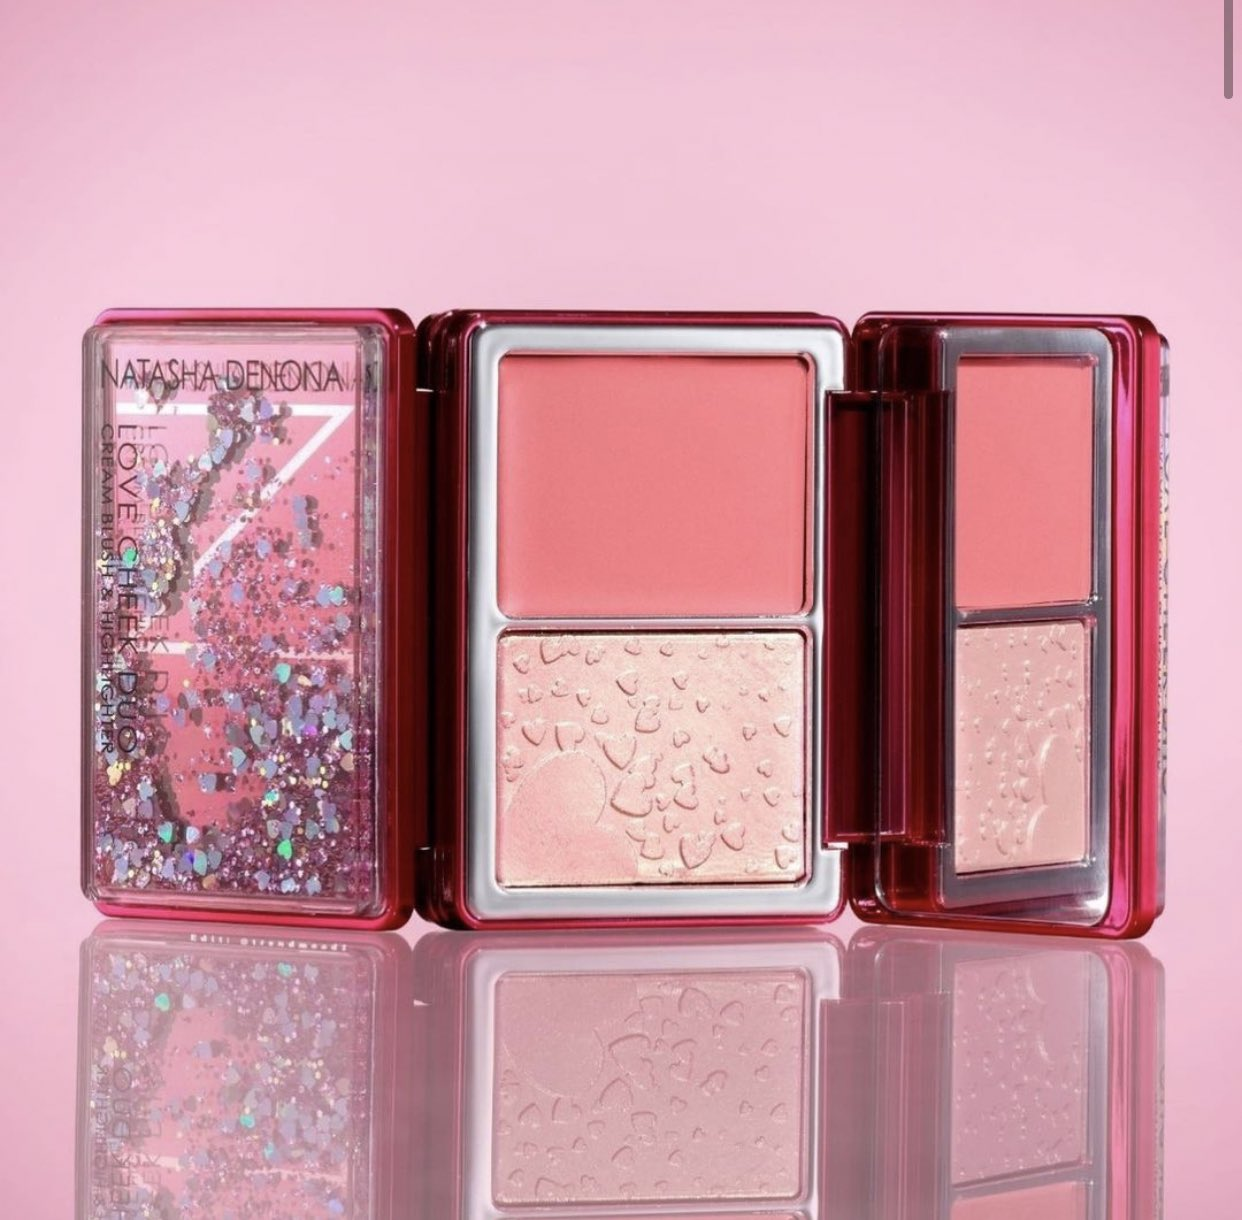 4 1 - Natasha Denona Love Mini Collection 2021